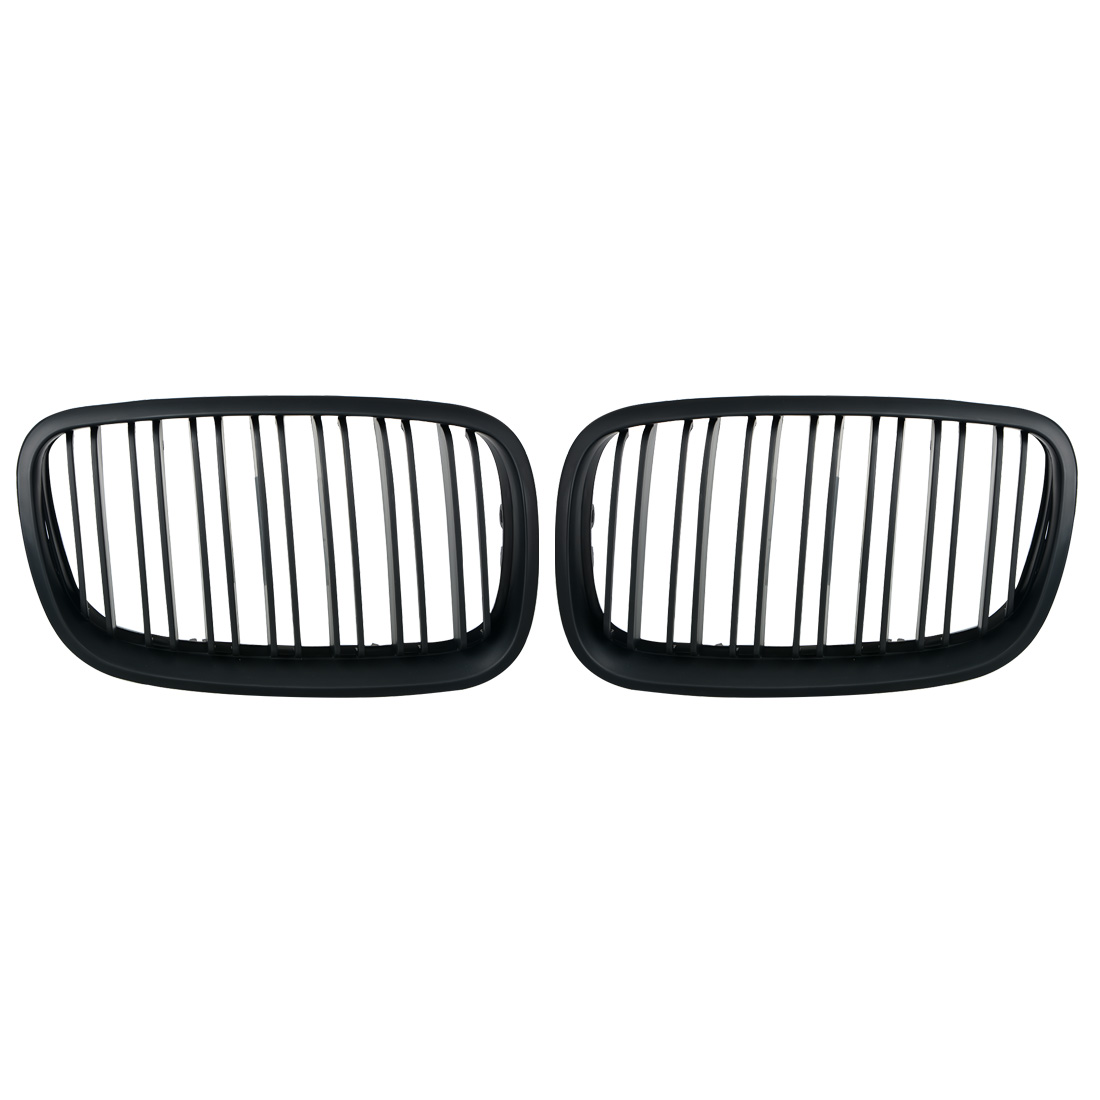 2pcs Matte Black Double Slat Kidney Grille Front Grill For BMW E70 E71 Model X5 X6 SUV M Sport xDrive 2007-2013 Car Styling 1pair matte black double slat kidney grille front grill for bmw e70 e71 model x5 x6 suv m sport xdrive 2008 2012 car styling